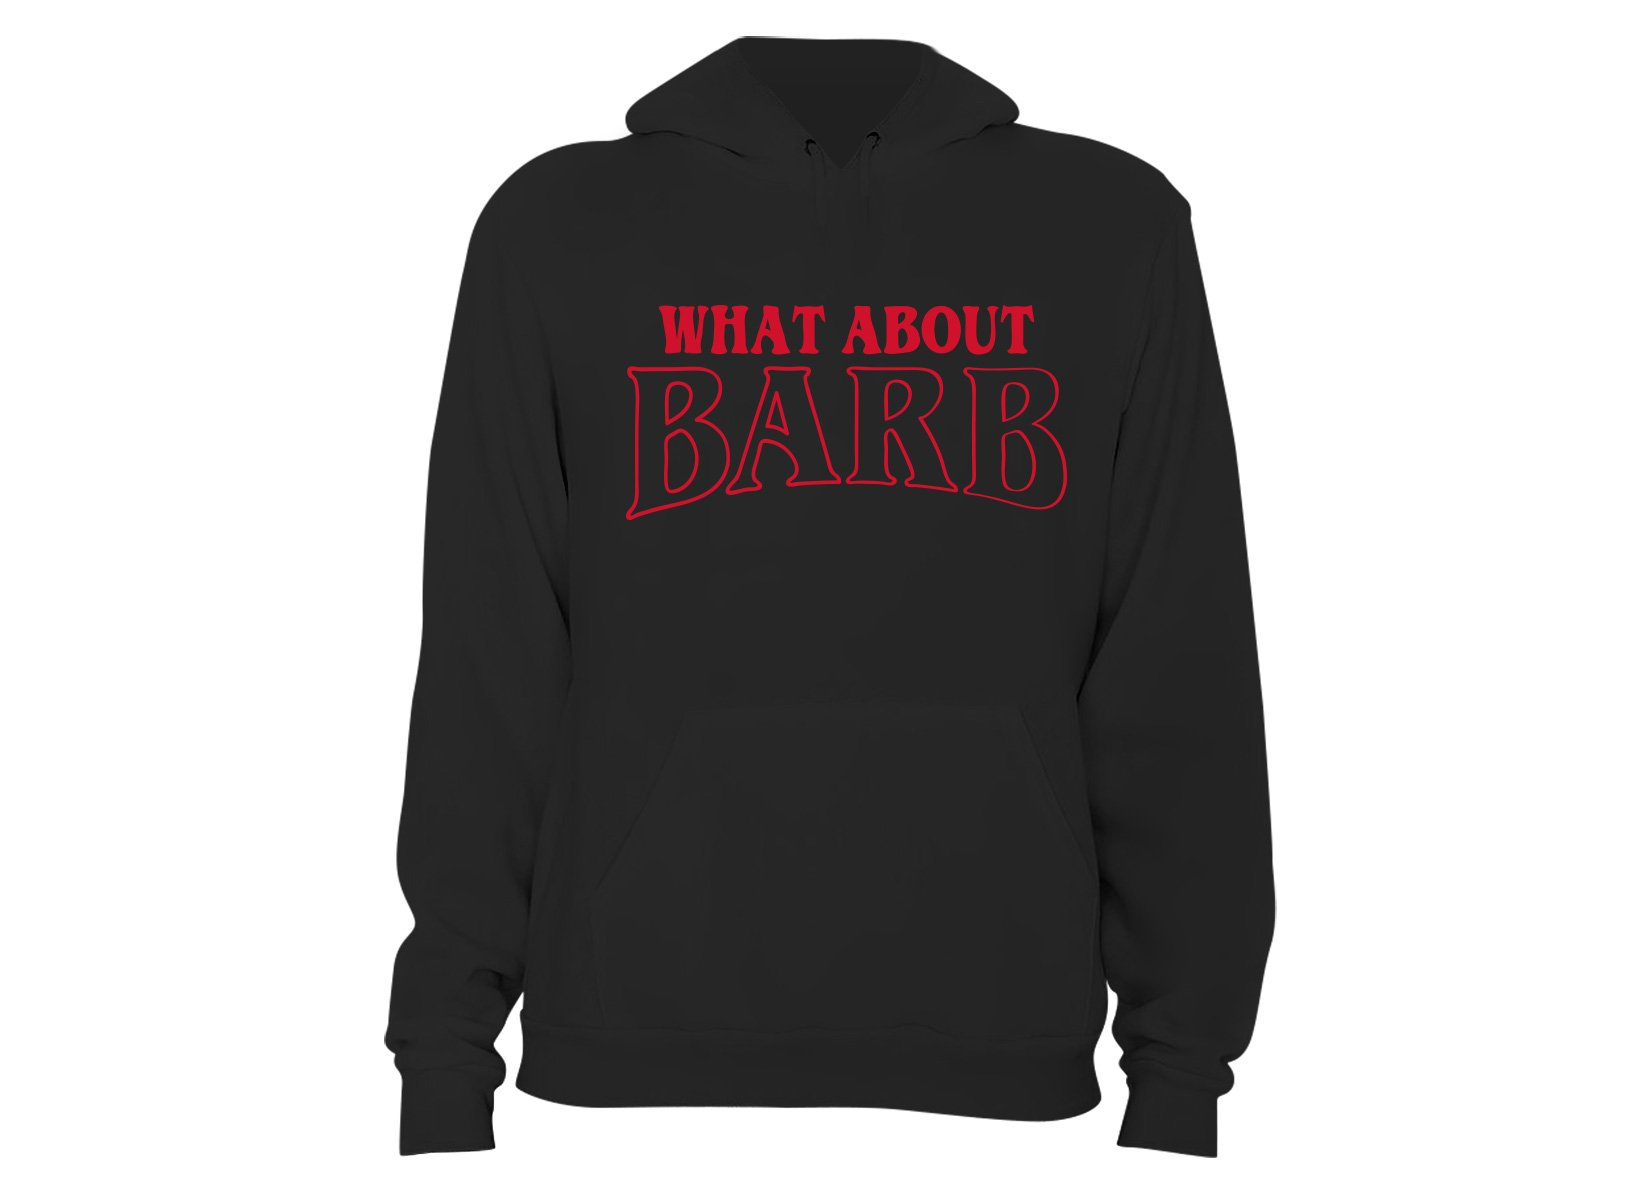 What About Barb? on Hoodie